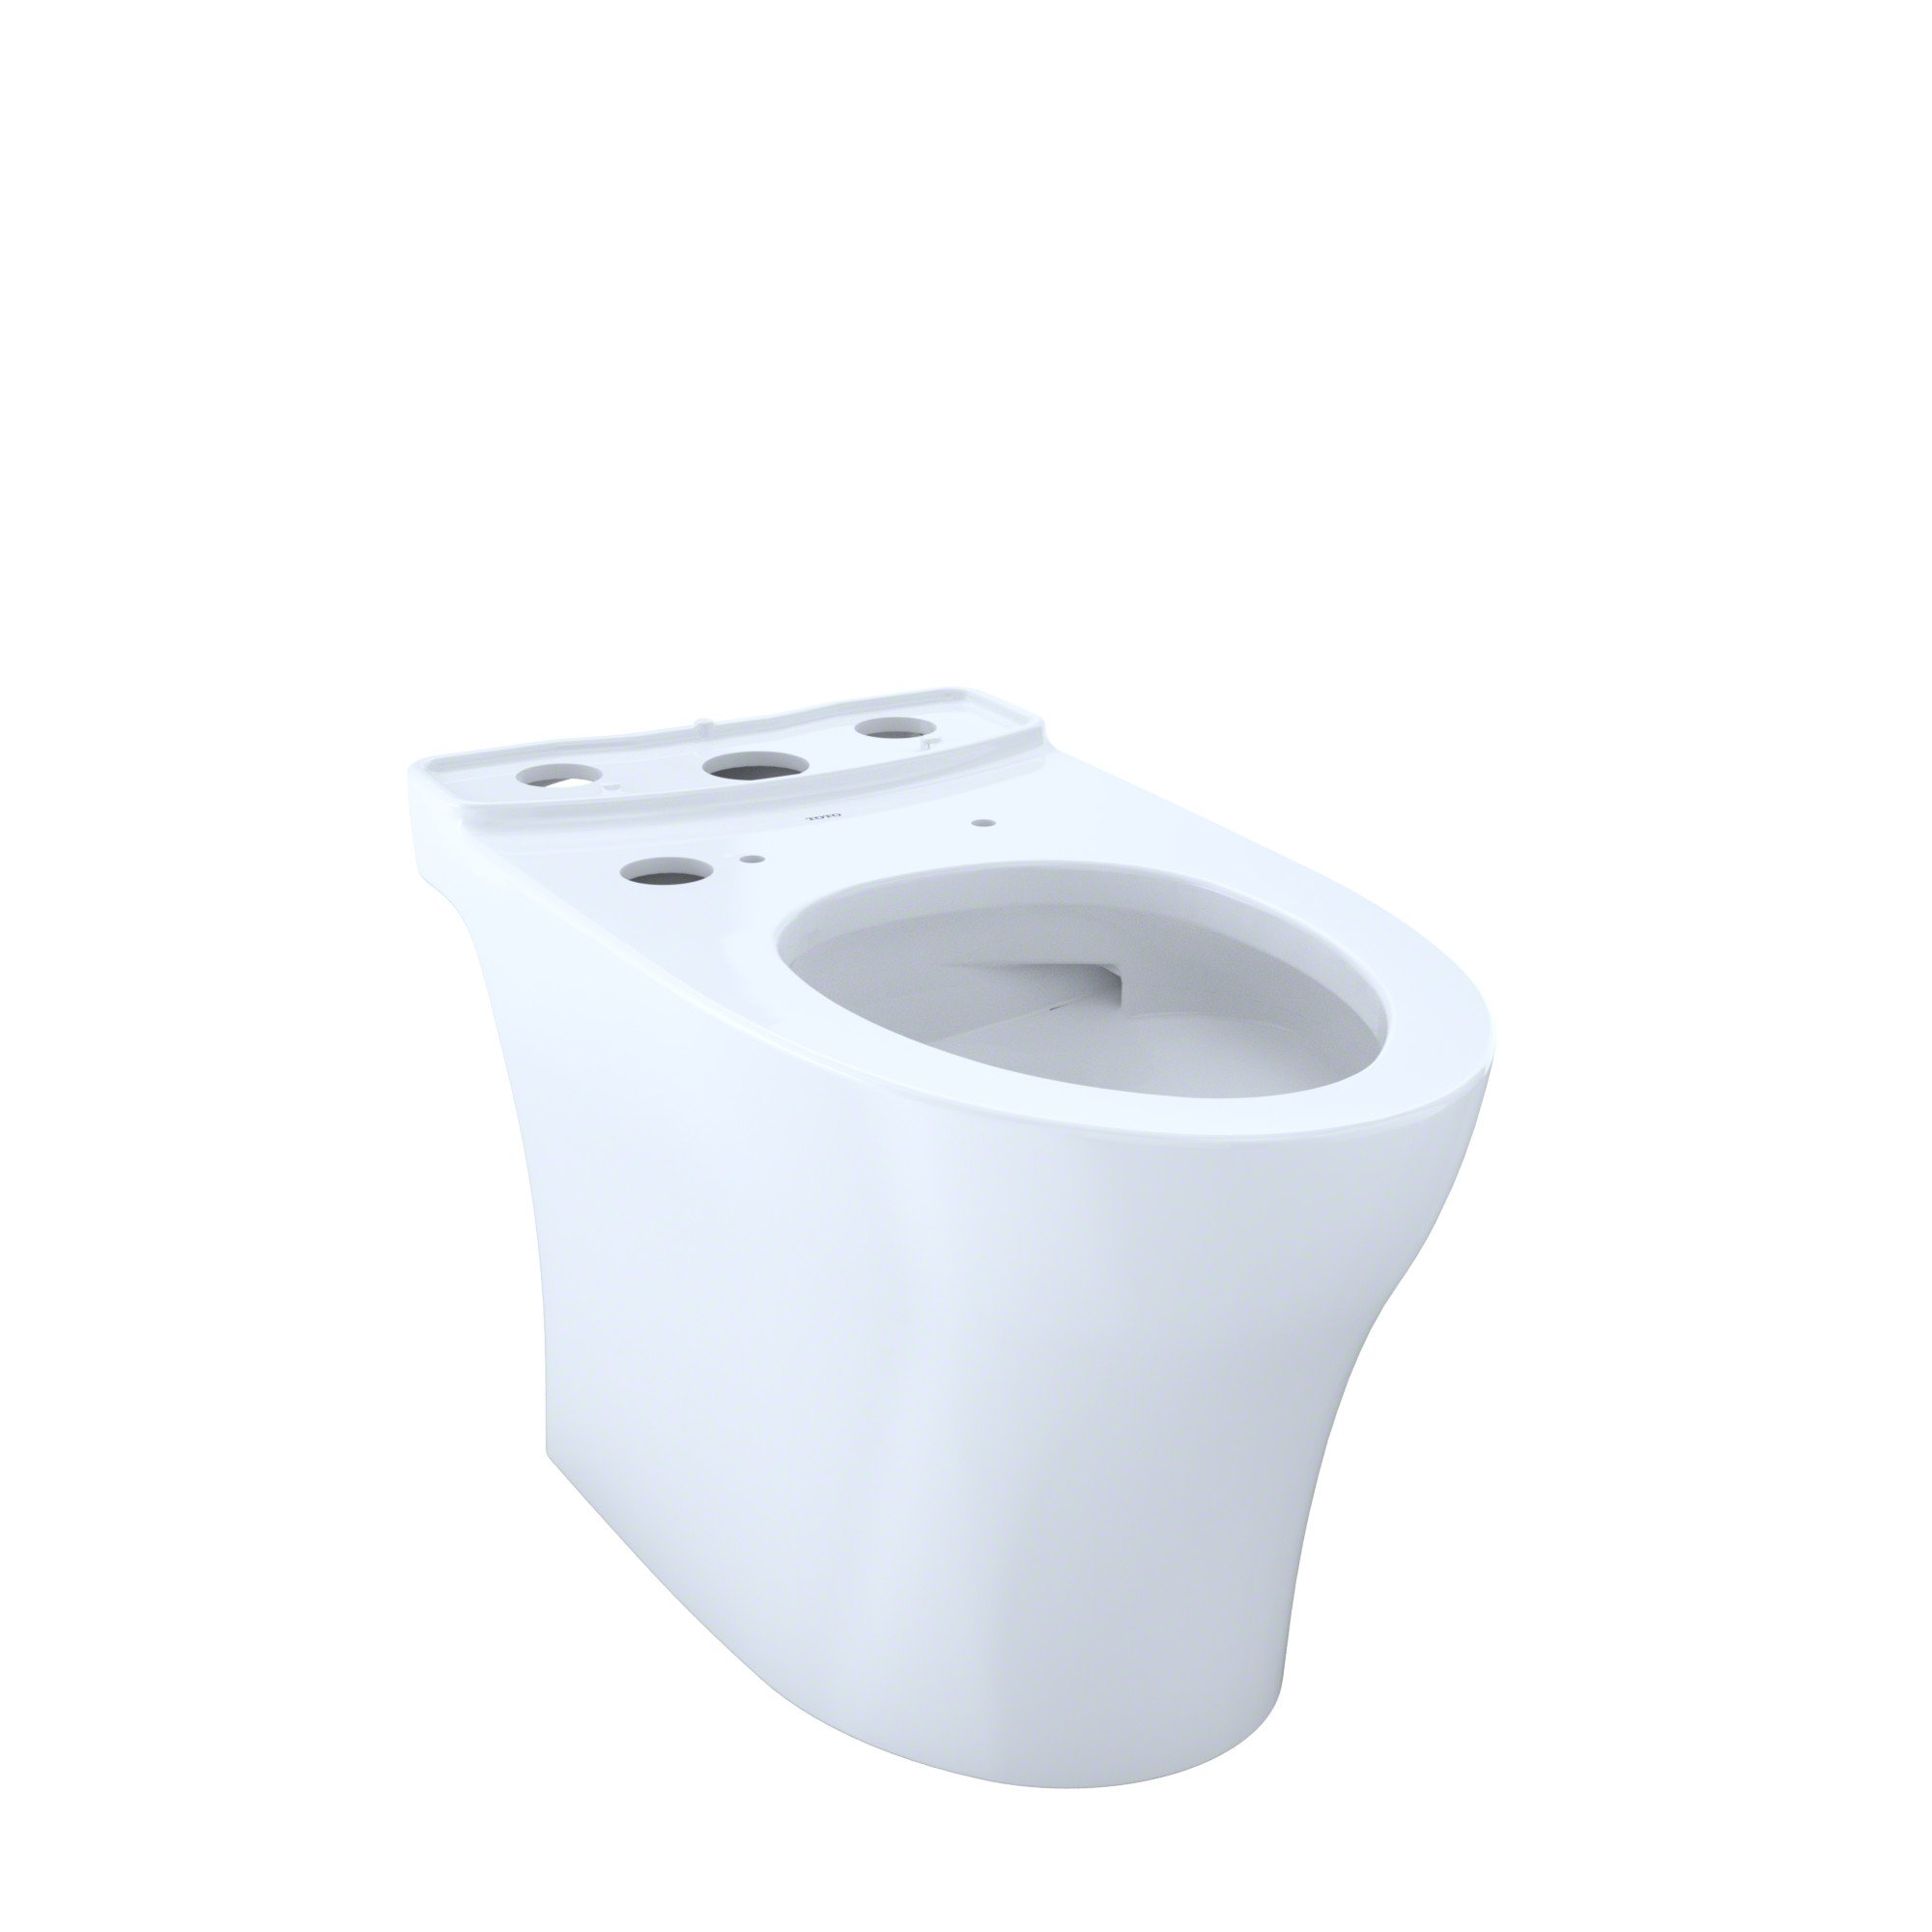 TOTO CT446CUGT40#01 Aquia IV WASHLET+ Elongated Skirted CeFiONtect, White-CT446CUGT40 Toilet Bowl, Cotton White by TOTO